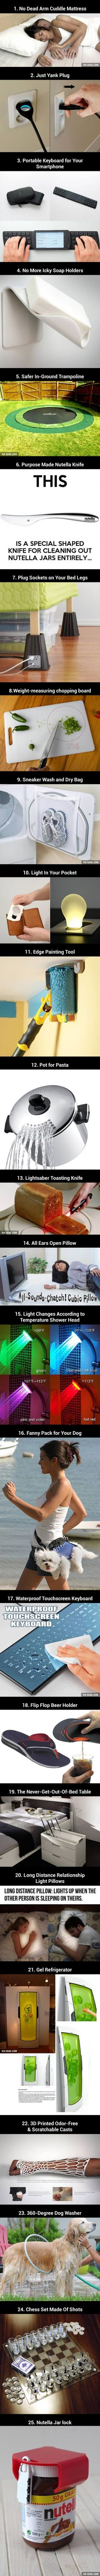 25 Just Really Cool Inventions(Diy Tech) (Cool Tech Gadgets)